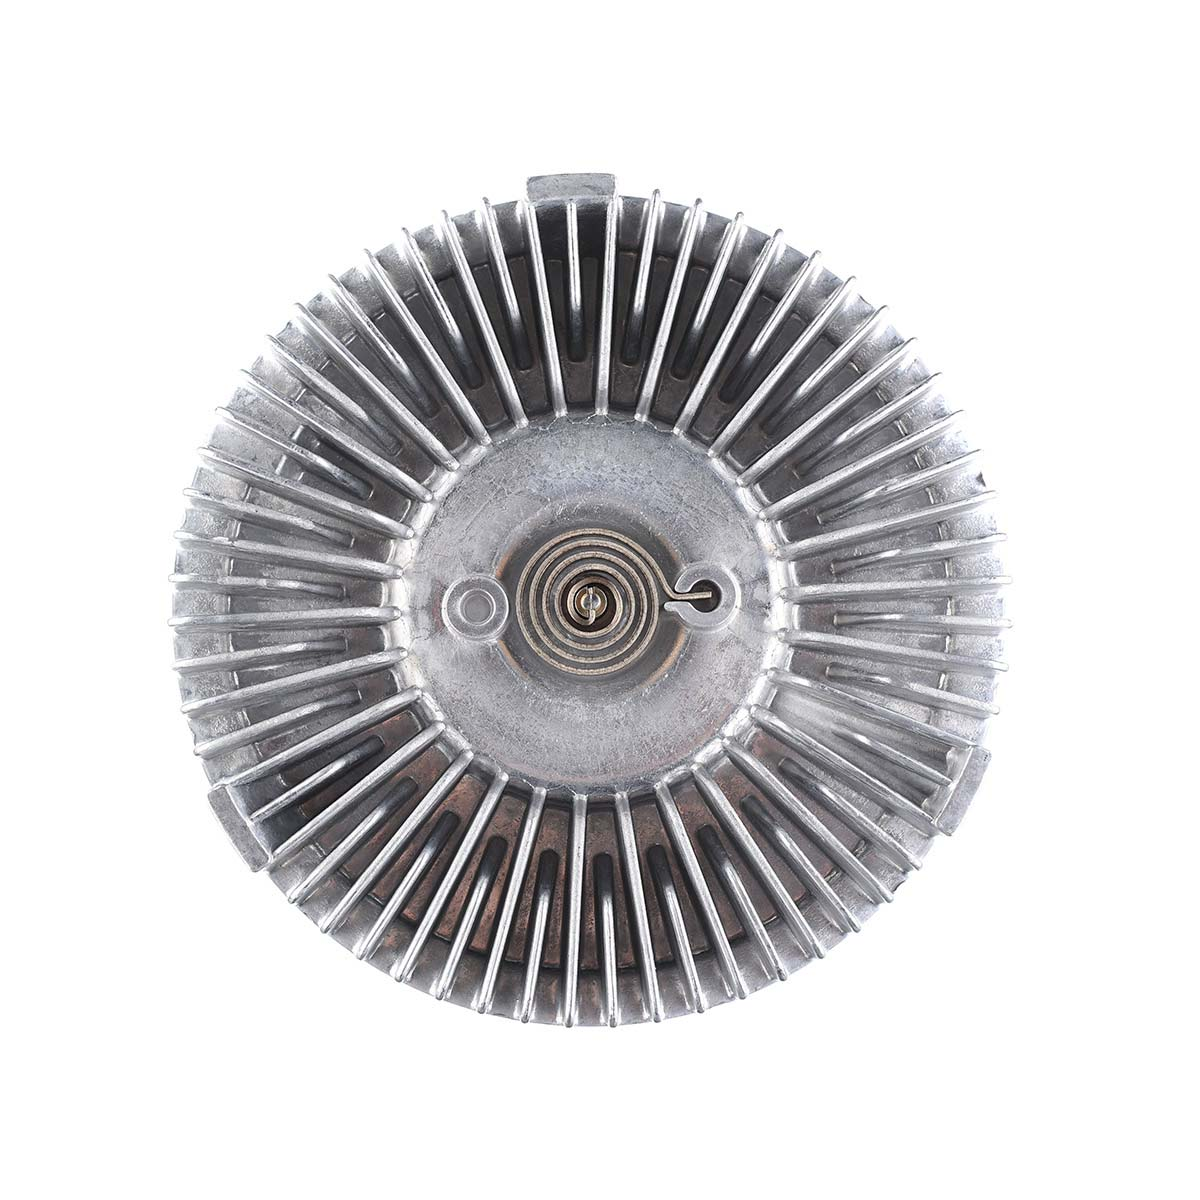 medium resolution of engine cooling fan clutch for ford ranger 1998 1999 2011 explorer sport trac mazda b4000 mercury mountaineer 4 0l f87z8a616fa in fans kits from